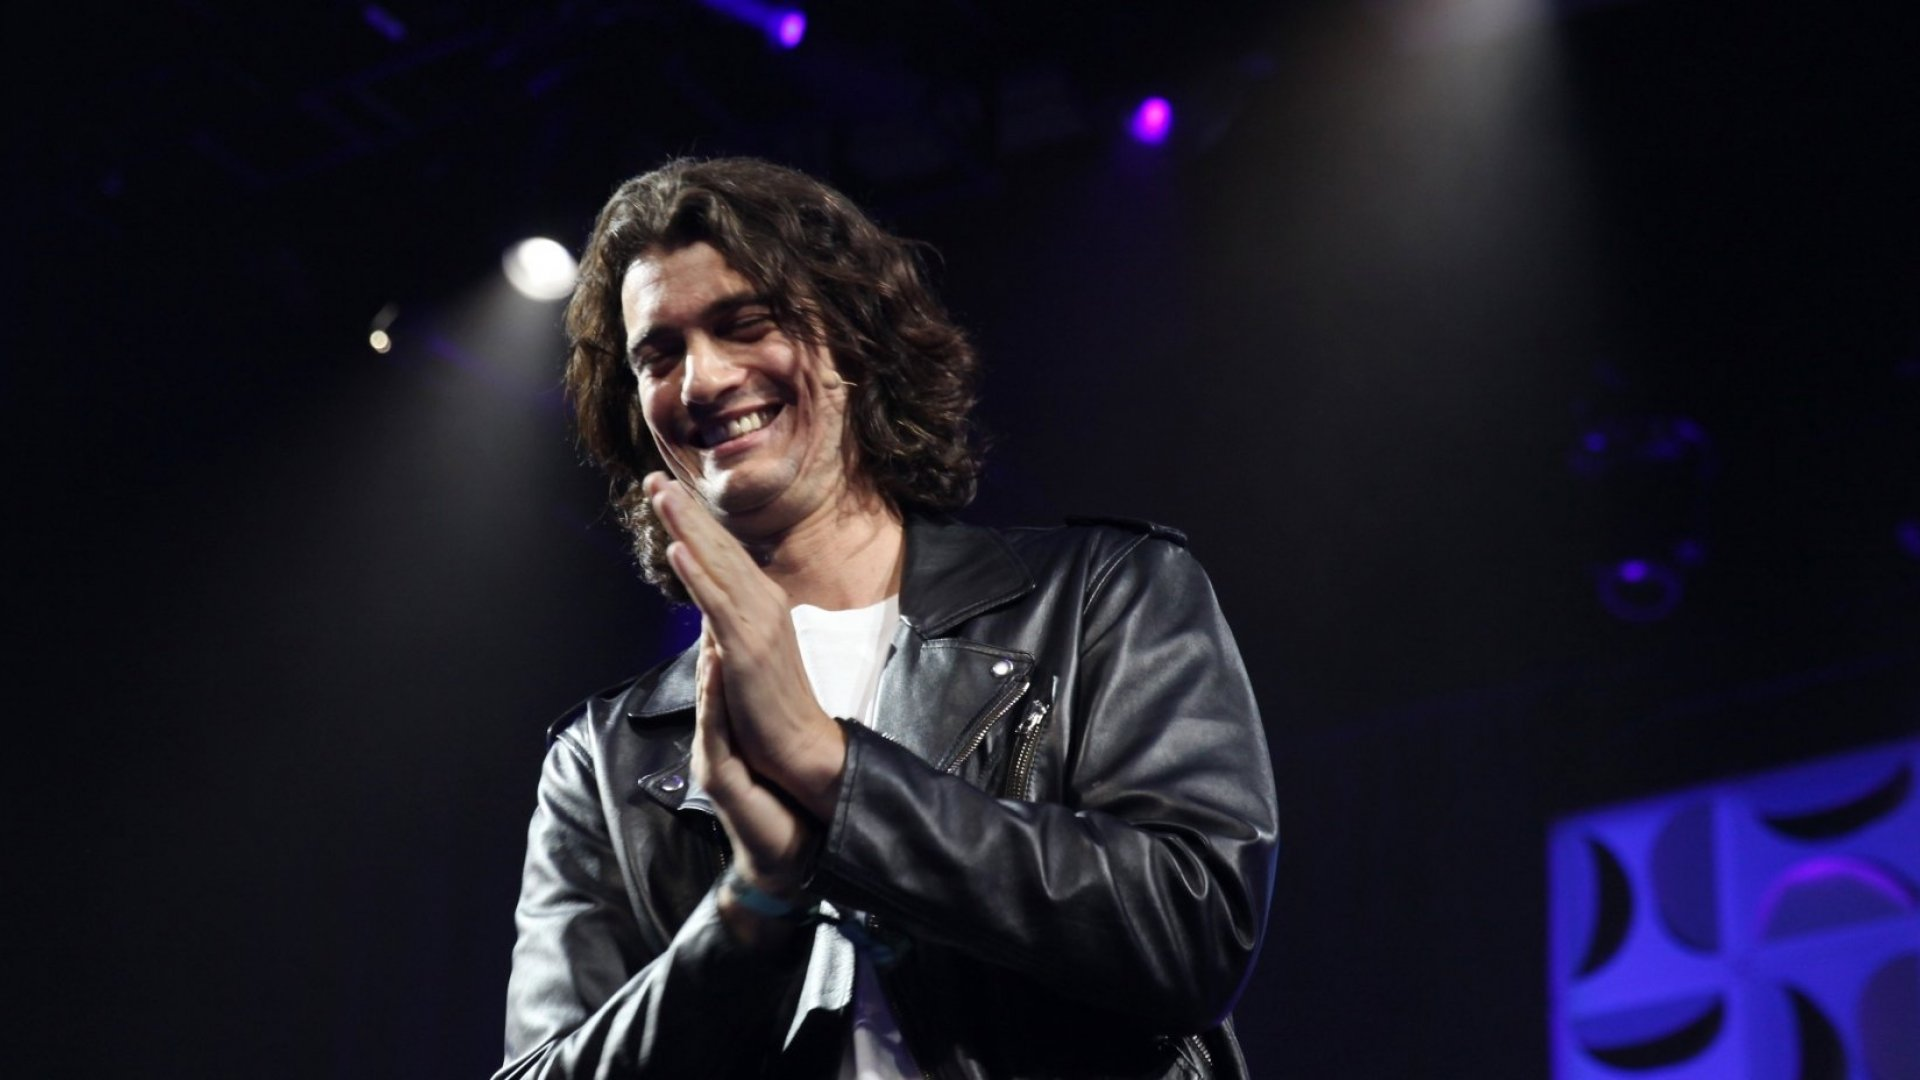 WeWork's CEO Adam Neumann Is Out. Here's Why It's About More Than Just a Botched IPO